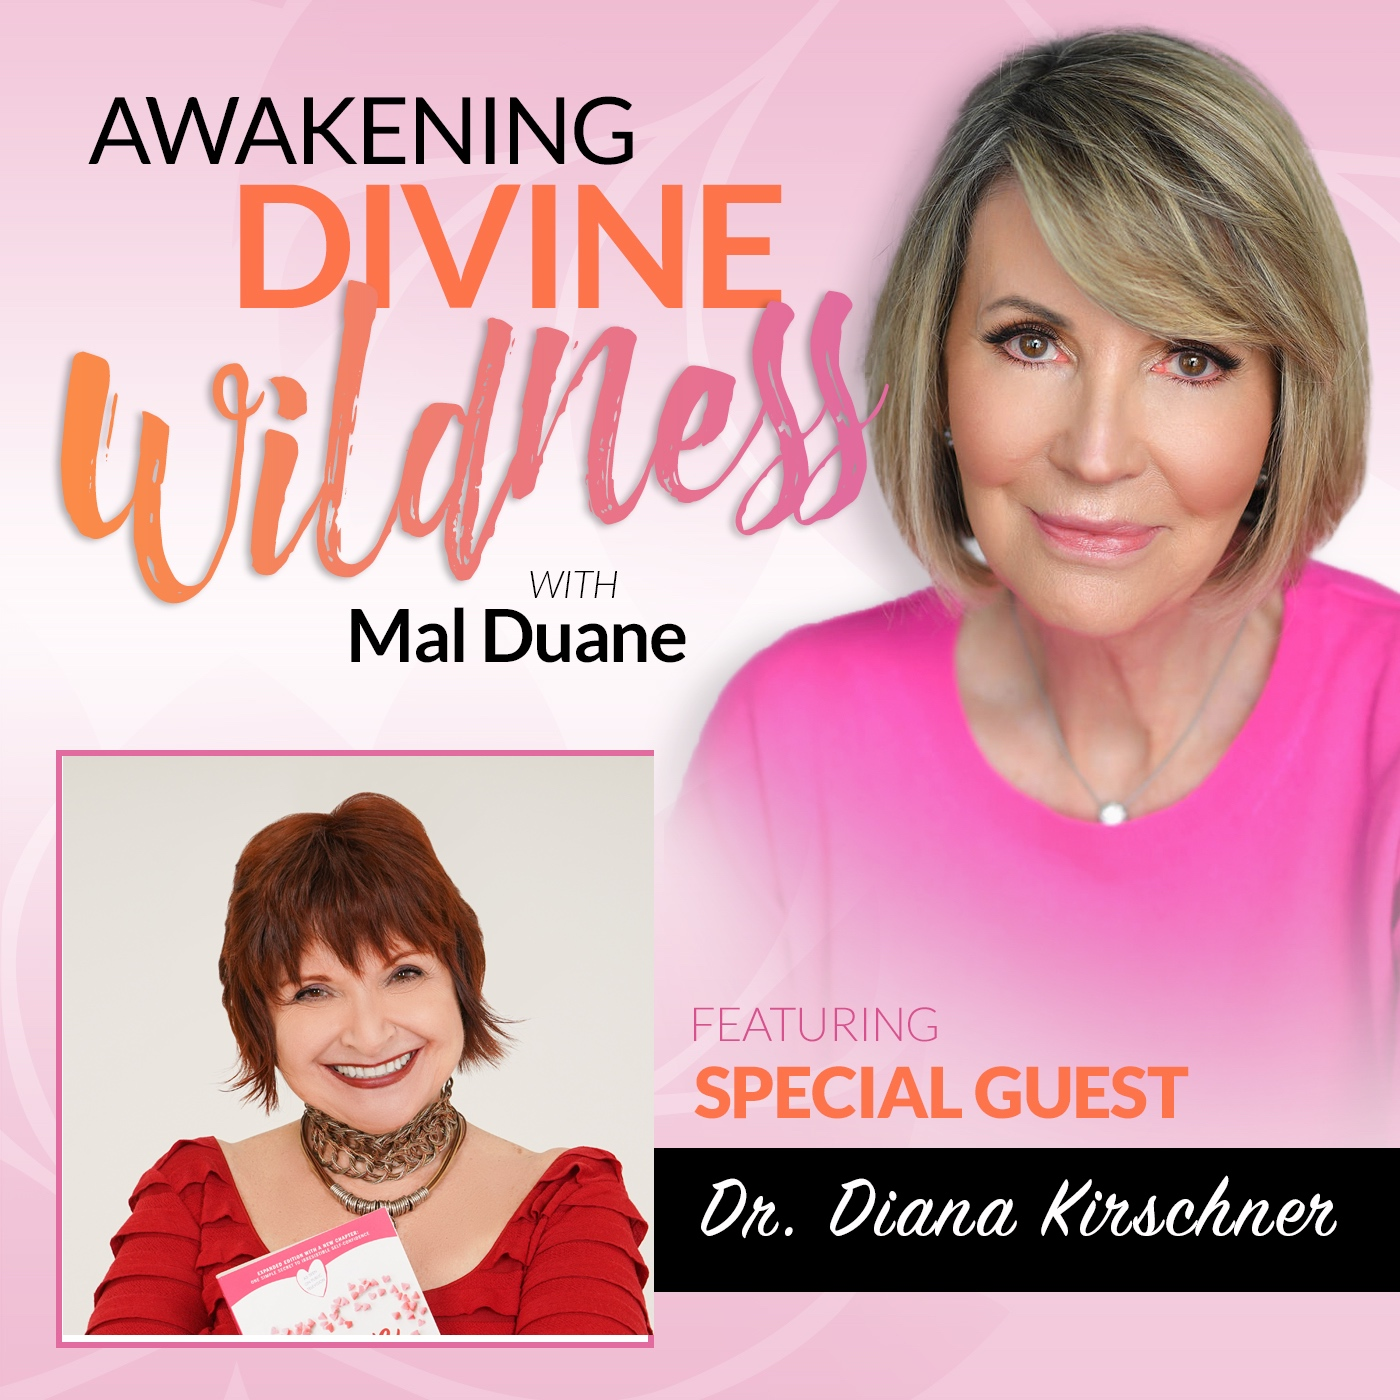 Meet Dr. Diana Kirschner, Author of Love in 90 Days